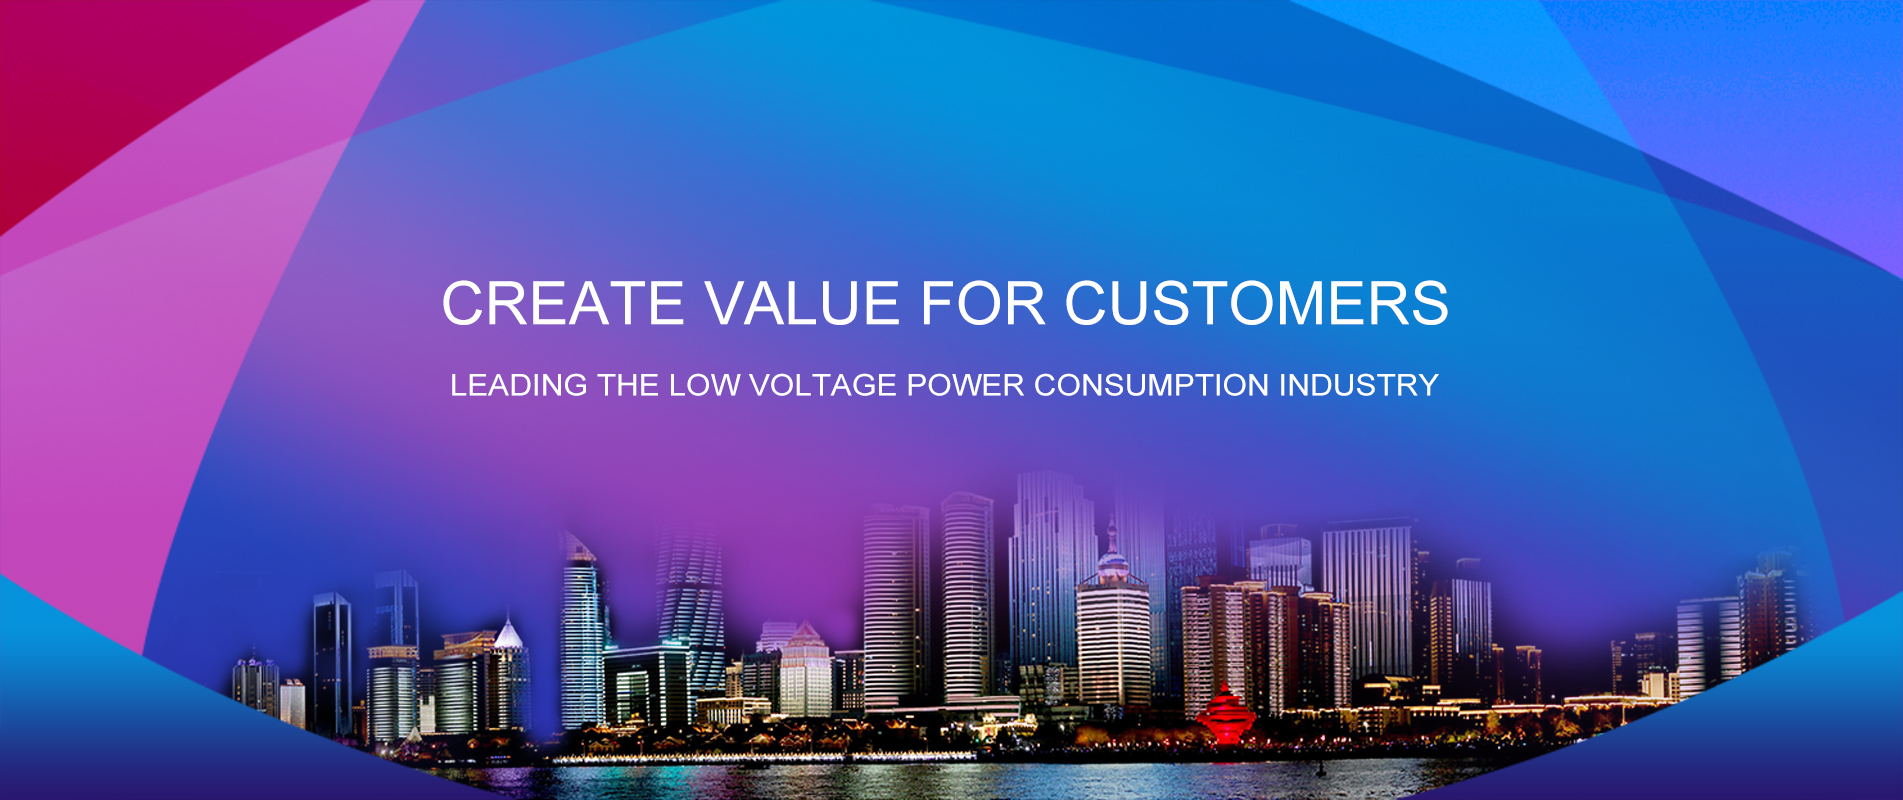 Low Voltage Power Consumption Leader